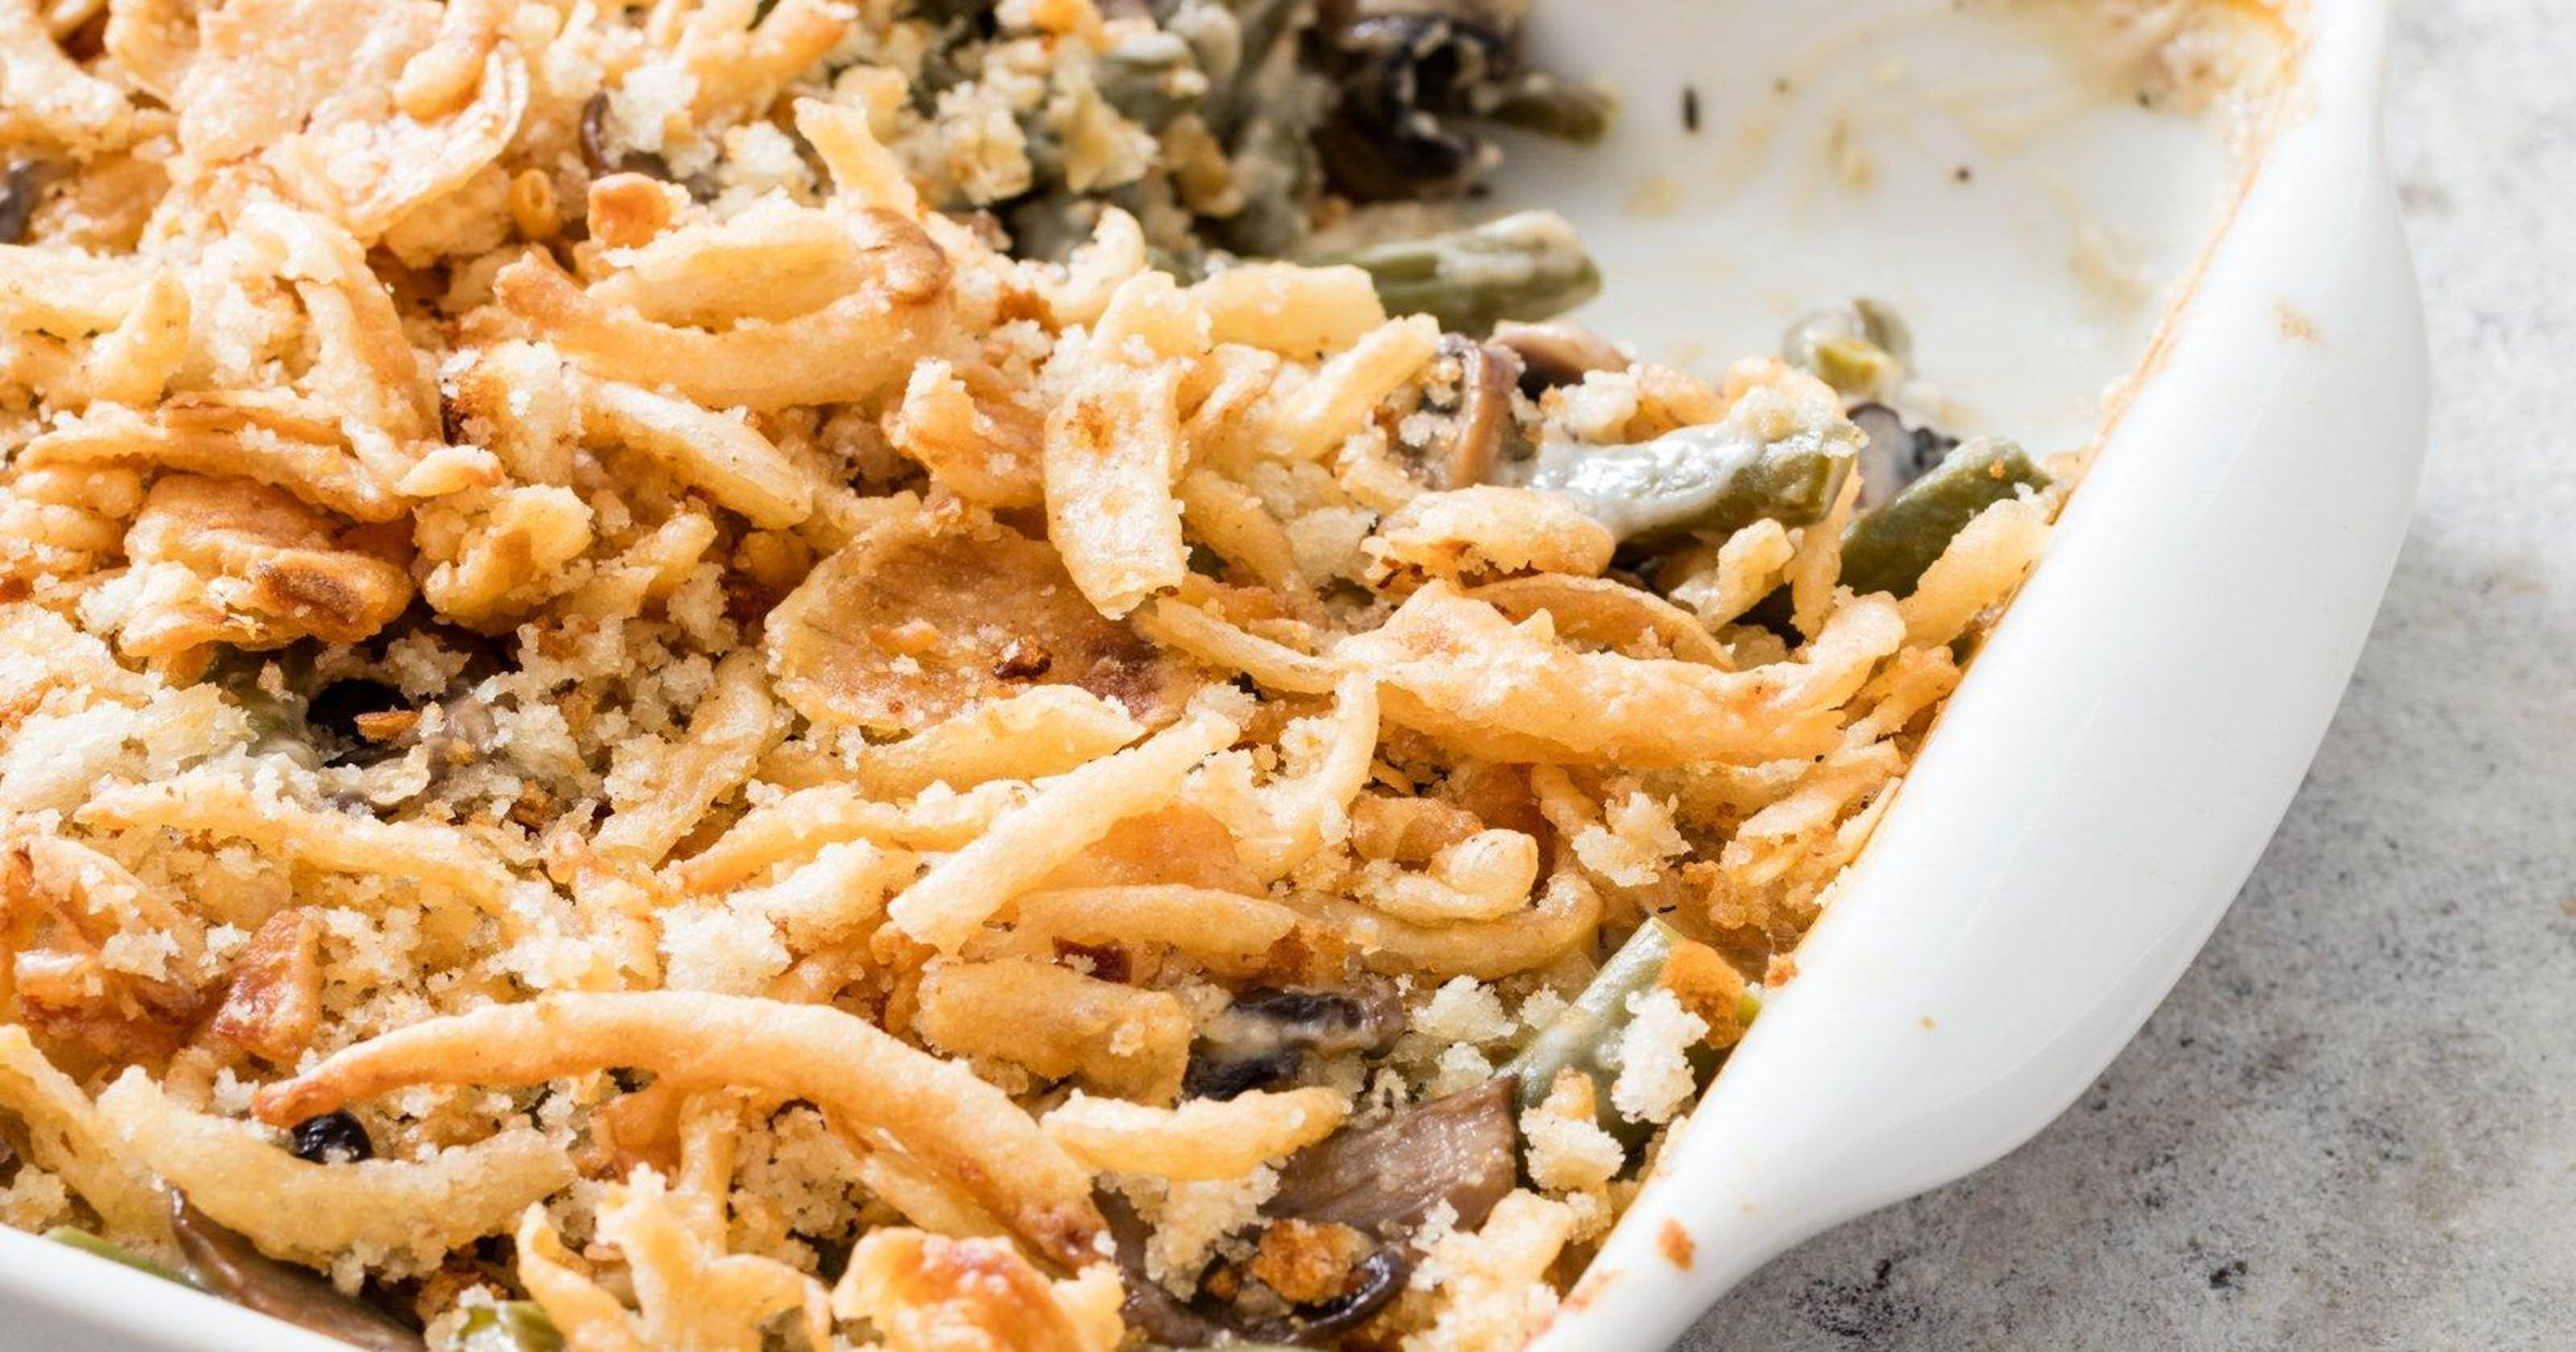 Food Network Green Casserole